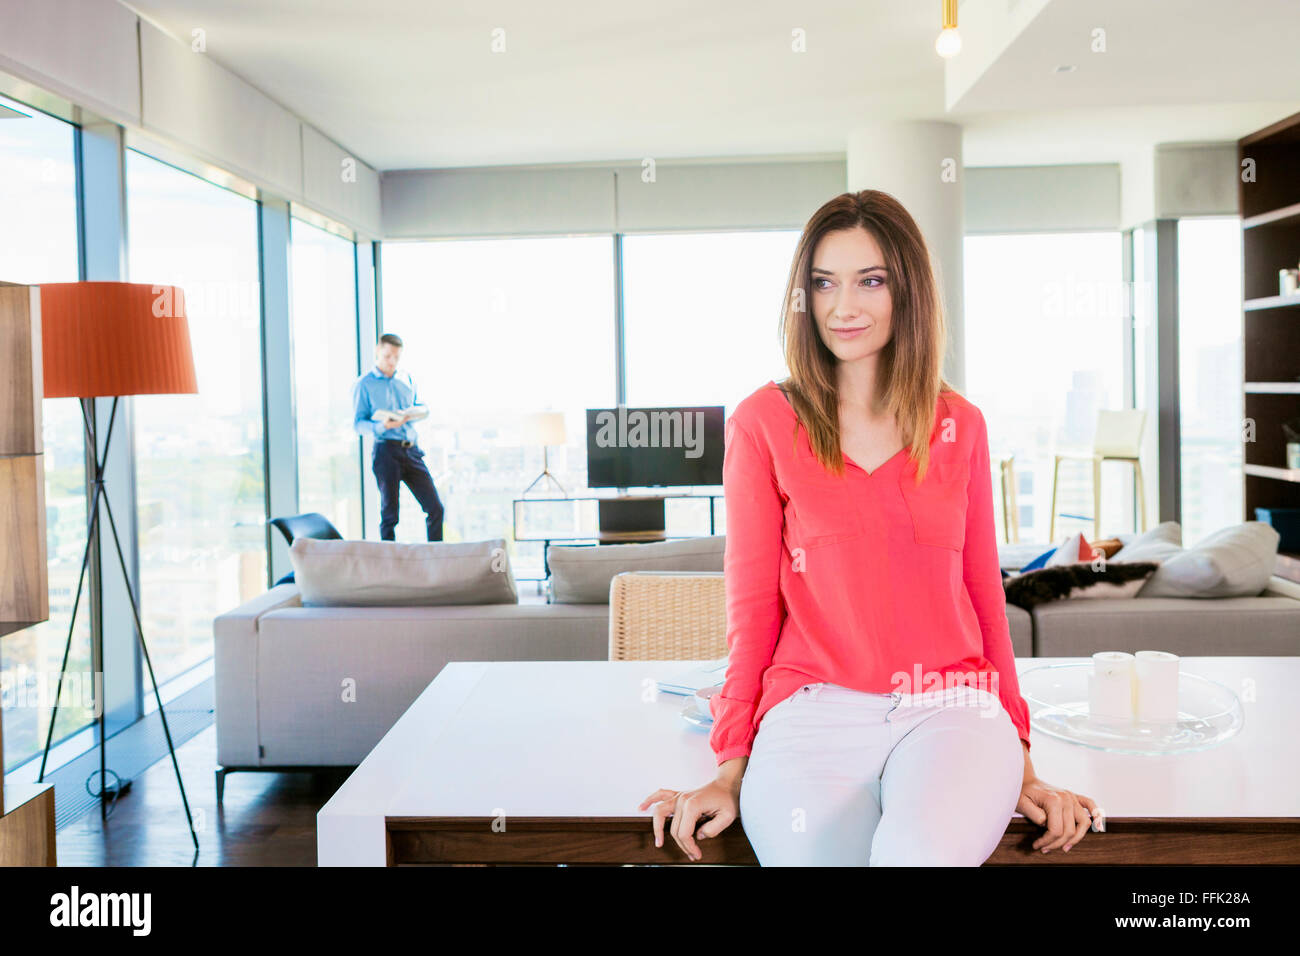 Woman in apartment day dreaming with man in background - Stock Image